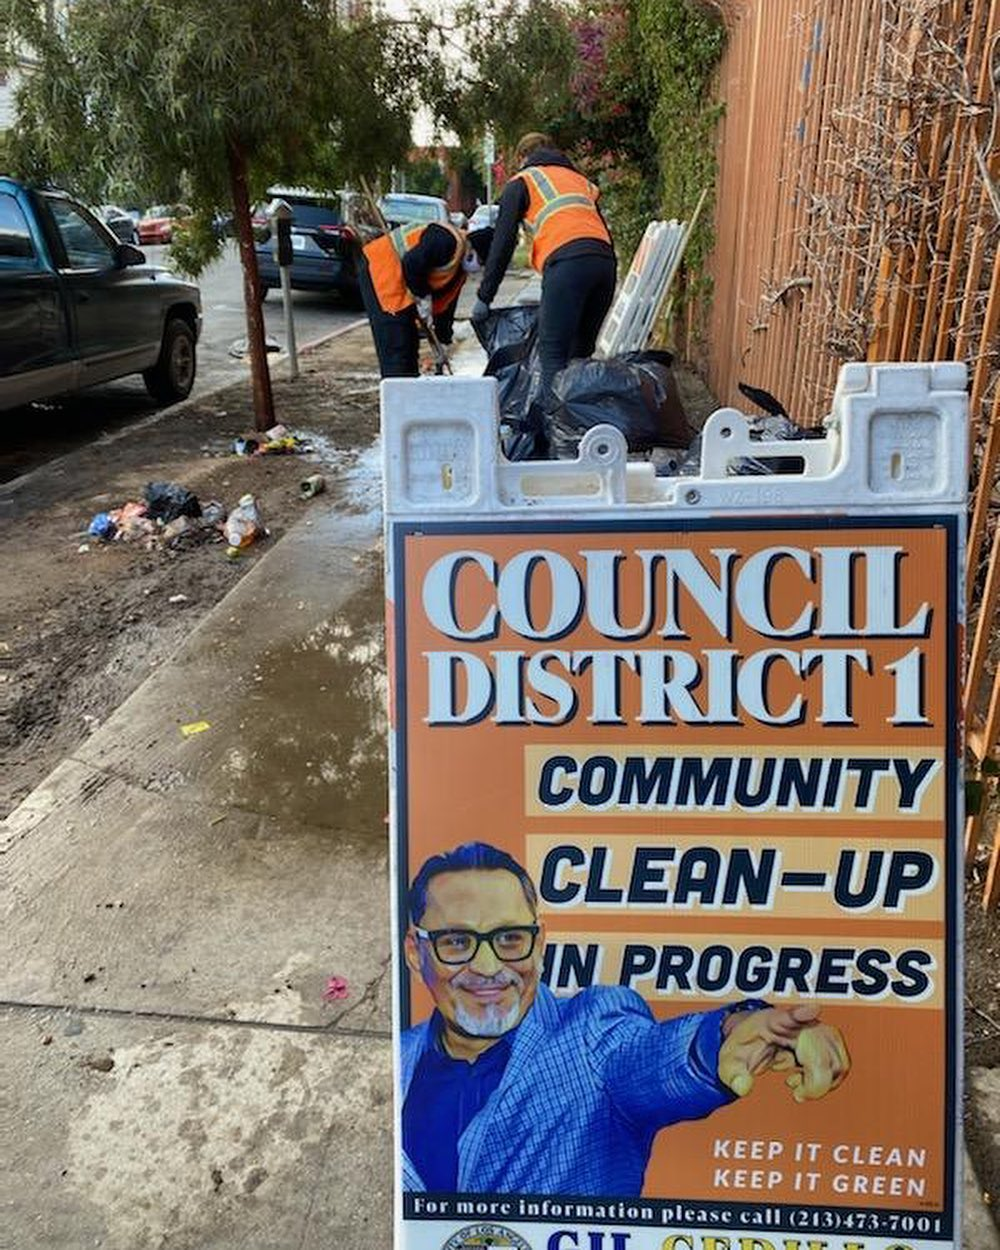 Councilmember Gil Cedillo's community clean up in progress at the corner of Beacon St and 7th St in Westlake 3-11-2021